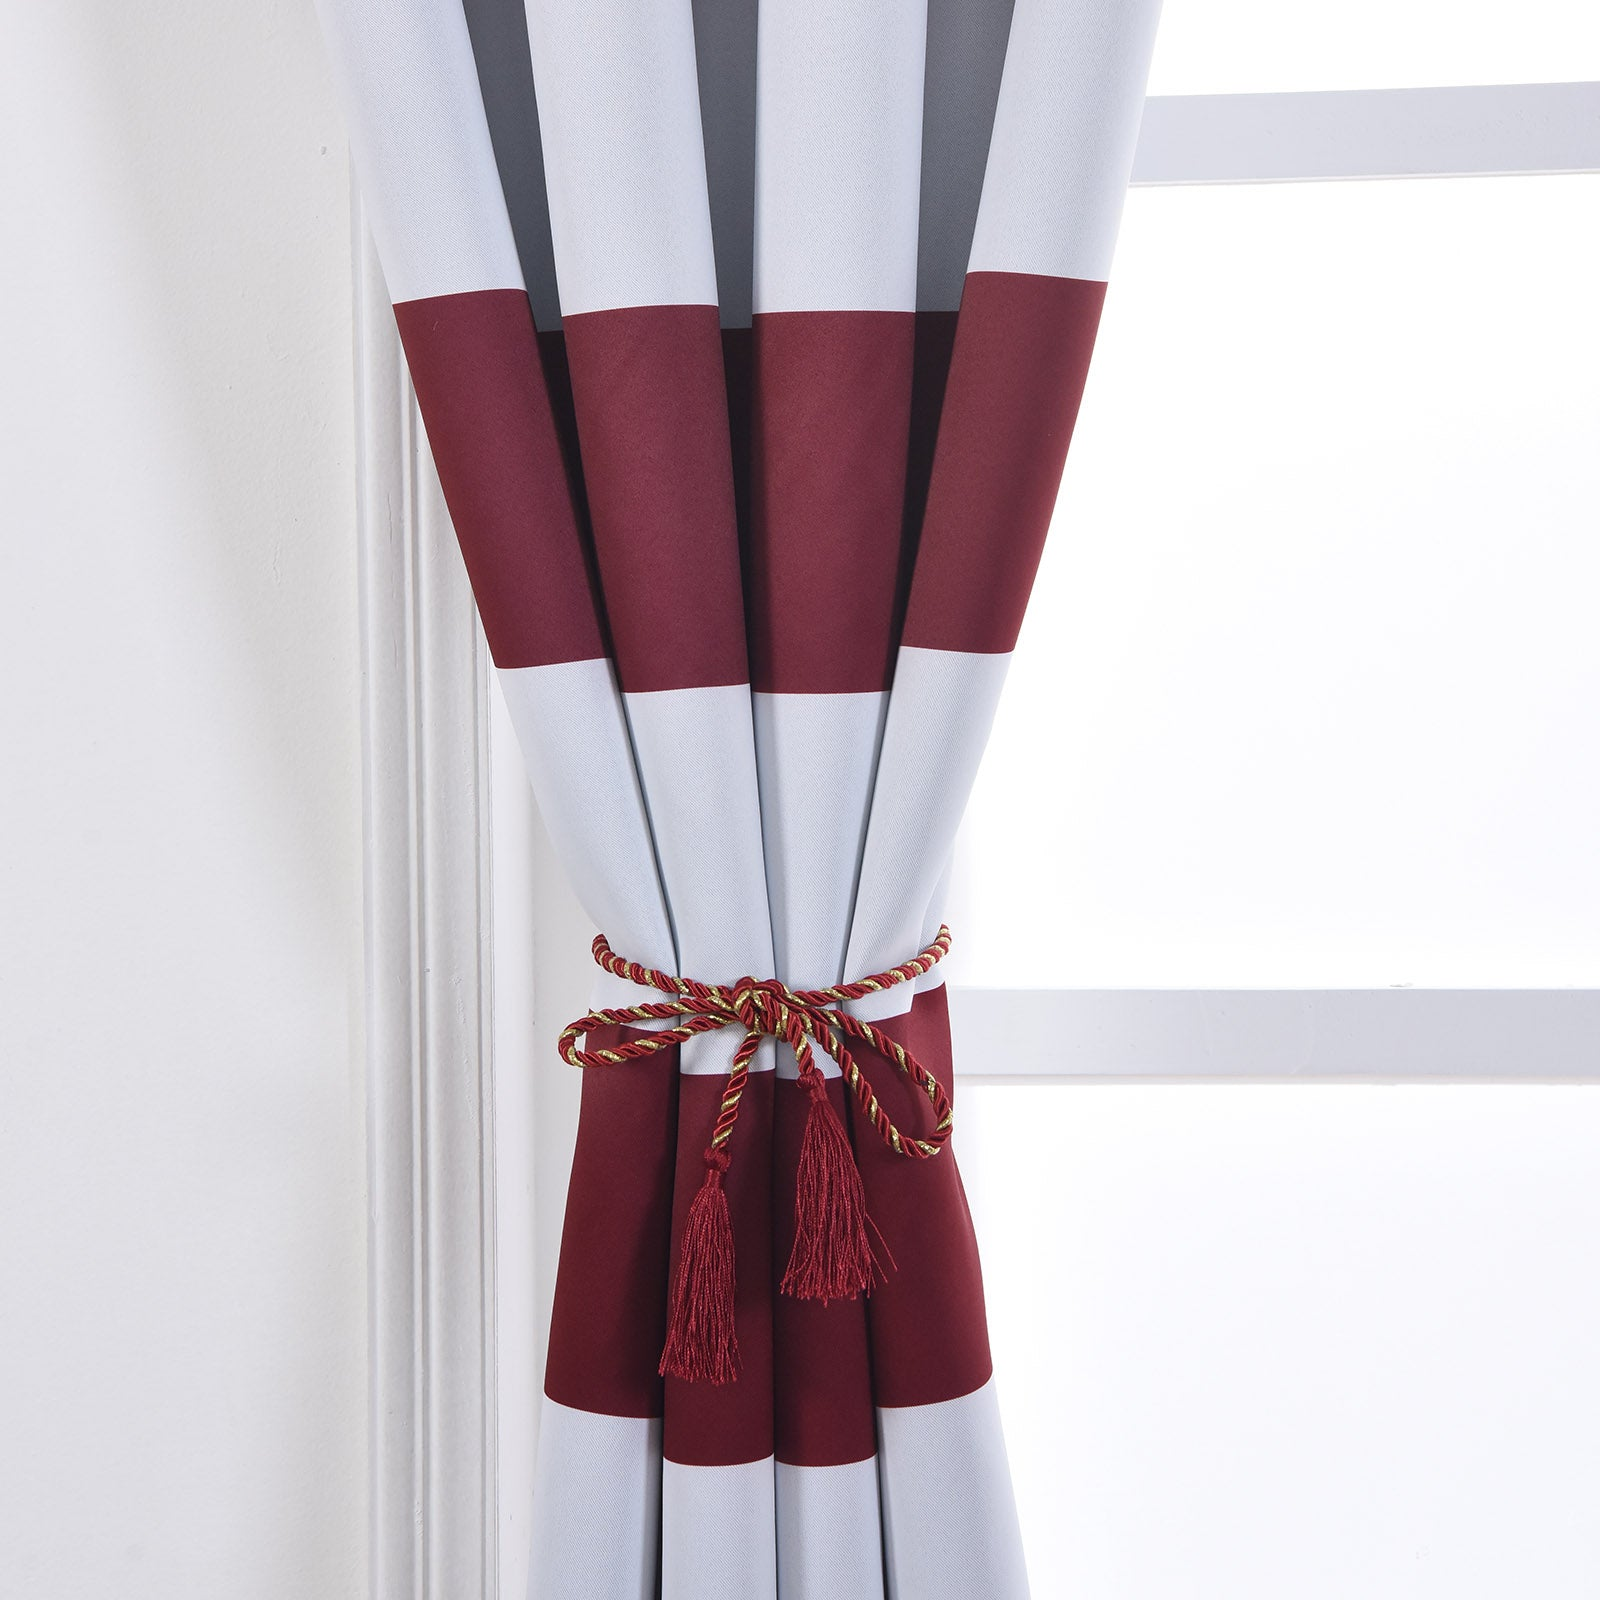 Blackout Curtains 52x96 White Burgundy Cabana Stripe Pack Of 2 Thermal Insulated